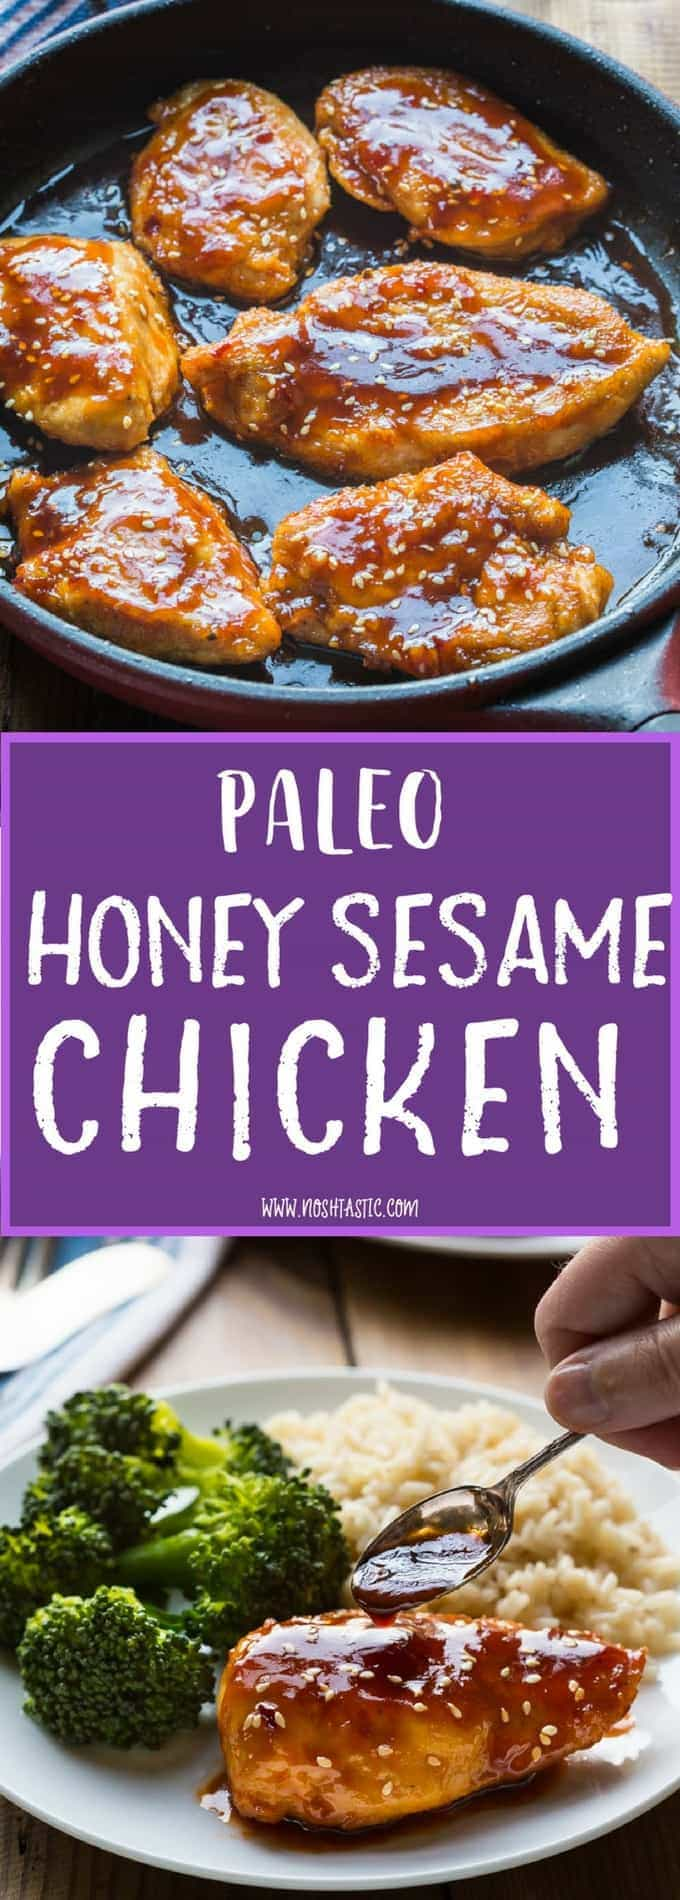 The BEST Paleo honey sesame chicken, it's so easy to make in about 10-15 minutes, a firm favorite in our house! If you are not paleo you can simply use gluten free soy sauce and cornstarch to replace the coconut aminos and arrowroot.